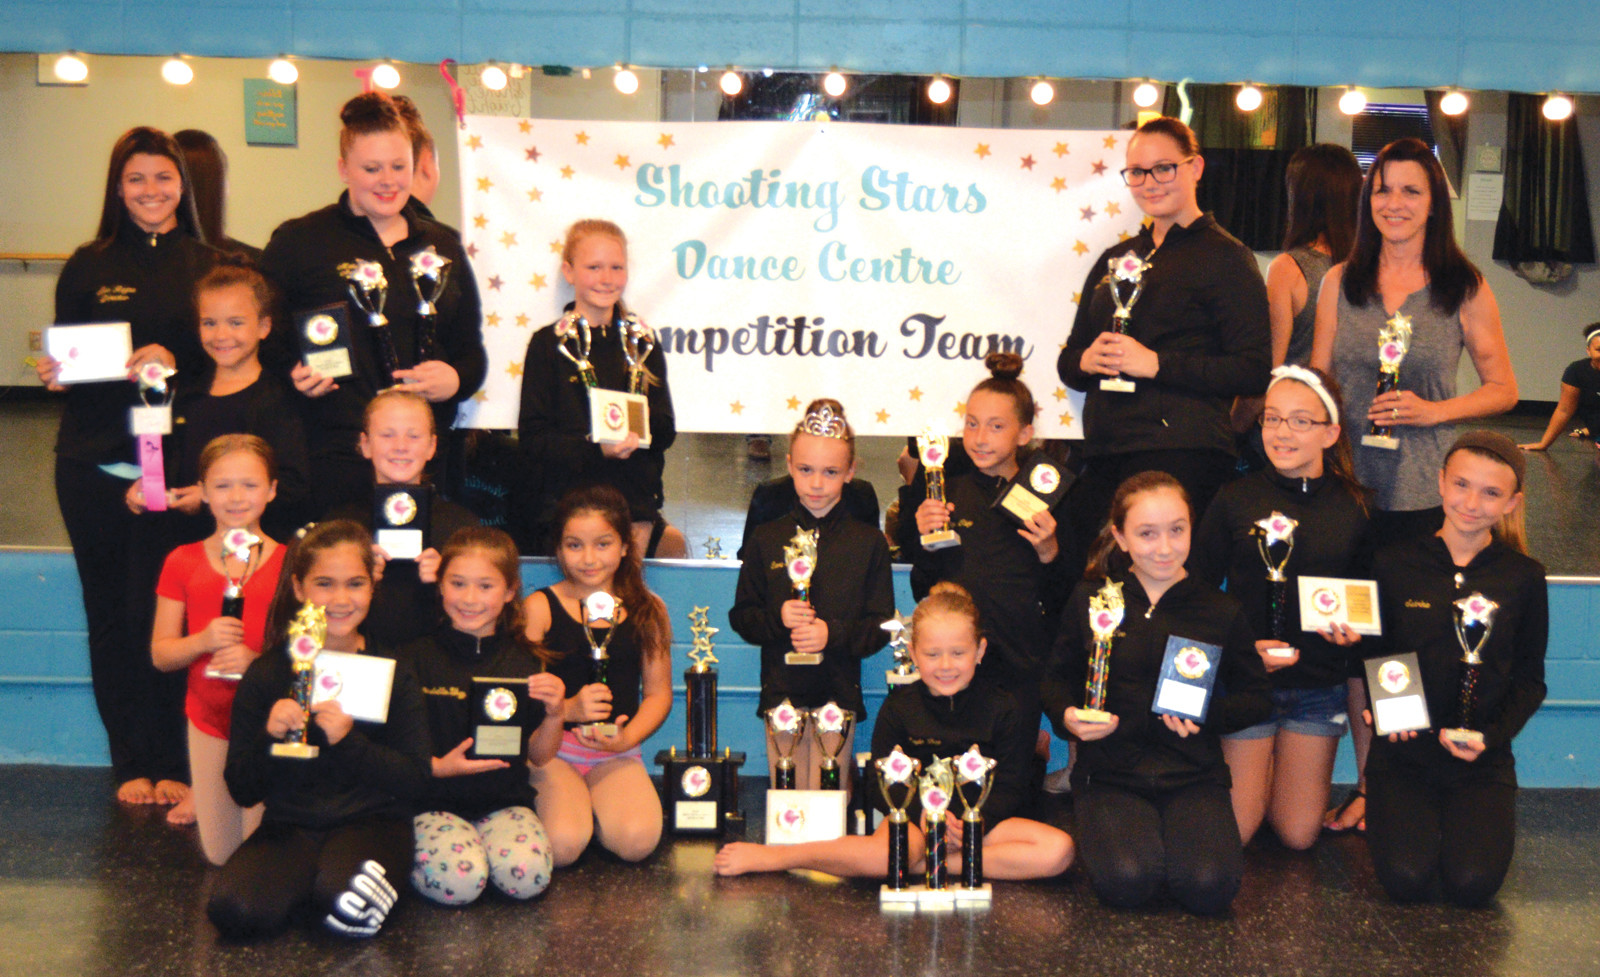 PROUD PERFORMERS: The Shooting Stars Dance Center competition team features co-owner Rayna D'Amico, Kenzi Cartier, Isabella Alvarez, Alyson Brown, Cora Tully, Laya Tully, kassidy Disano, lele Rivars, Sabrina smith, Lauren Depot, Cheyann Hazard, Analeah Martins, Ella Annicelli, Arabella Valiente, Giuliana Shanley, Natalie Toj and co-owner Pat D'Amico. (Sun Rise photos by Tim Forsberg)